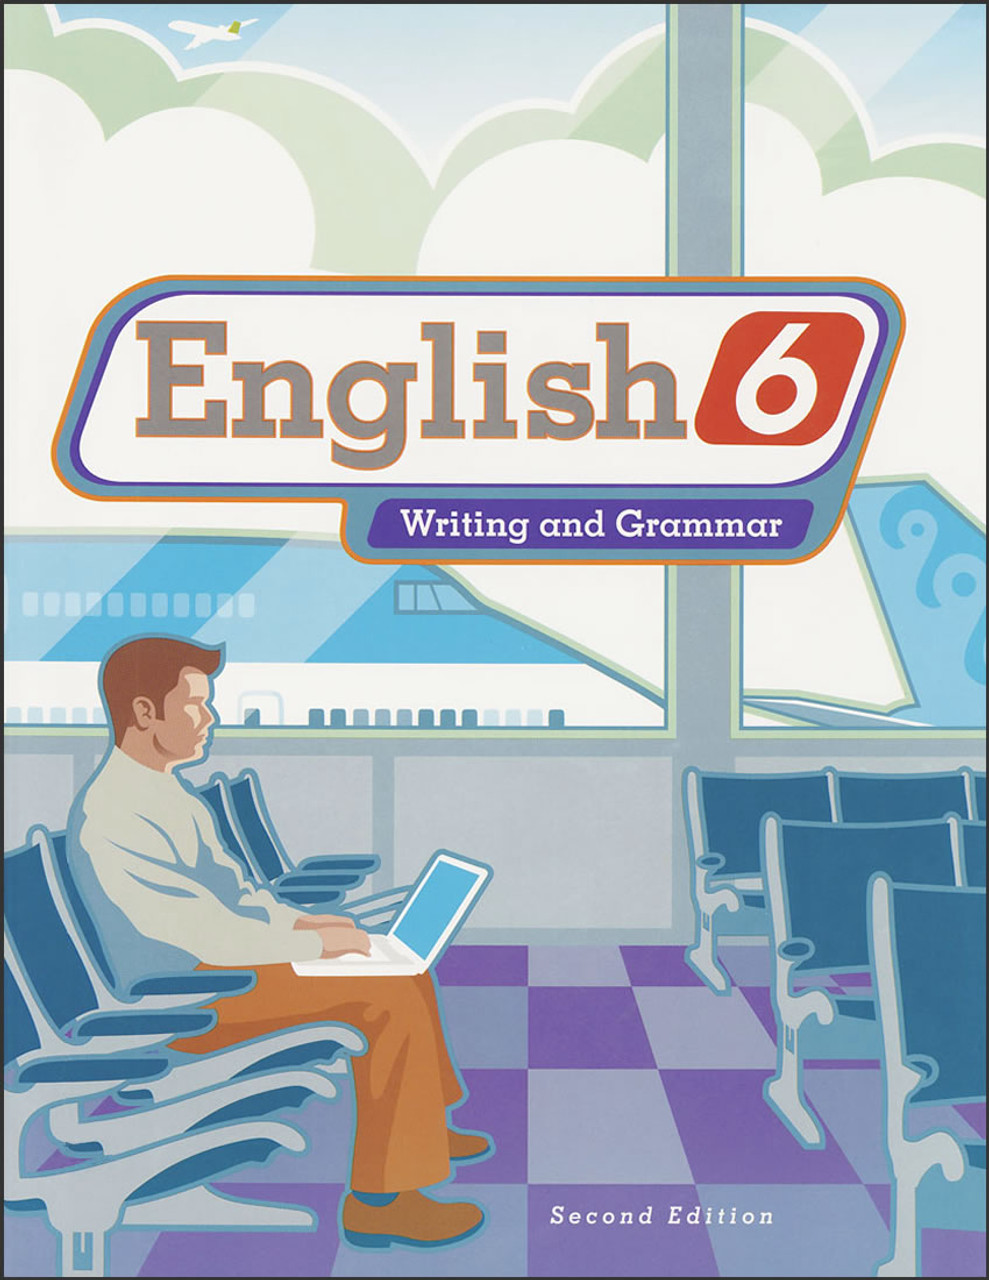 English 6, 2nd edition